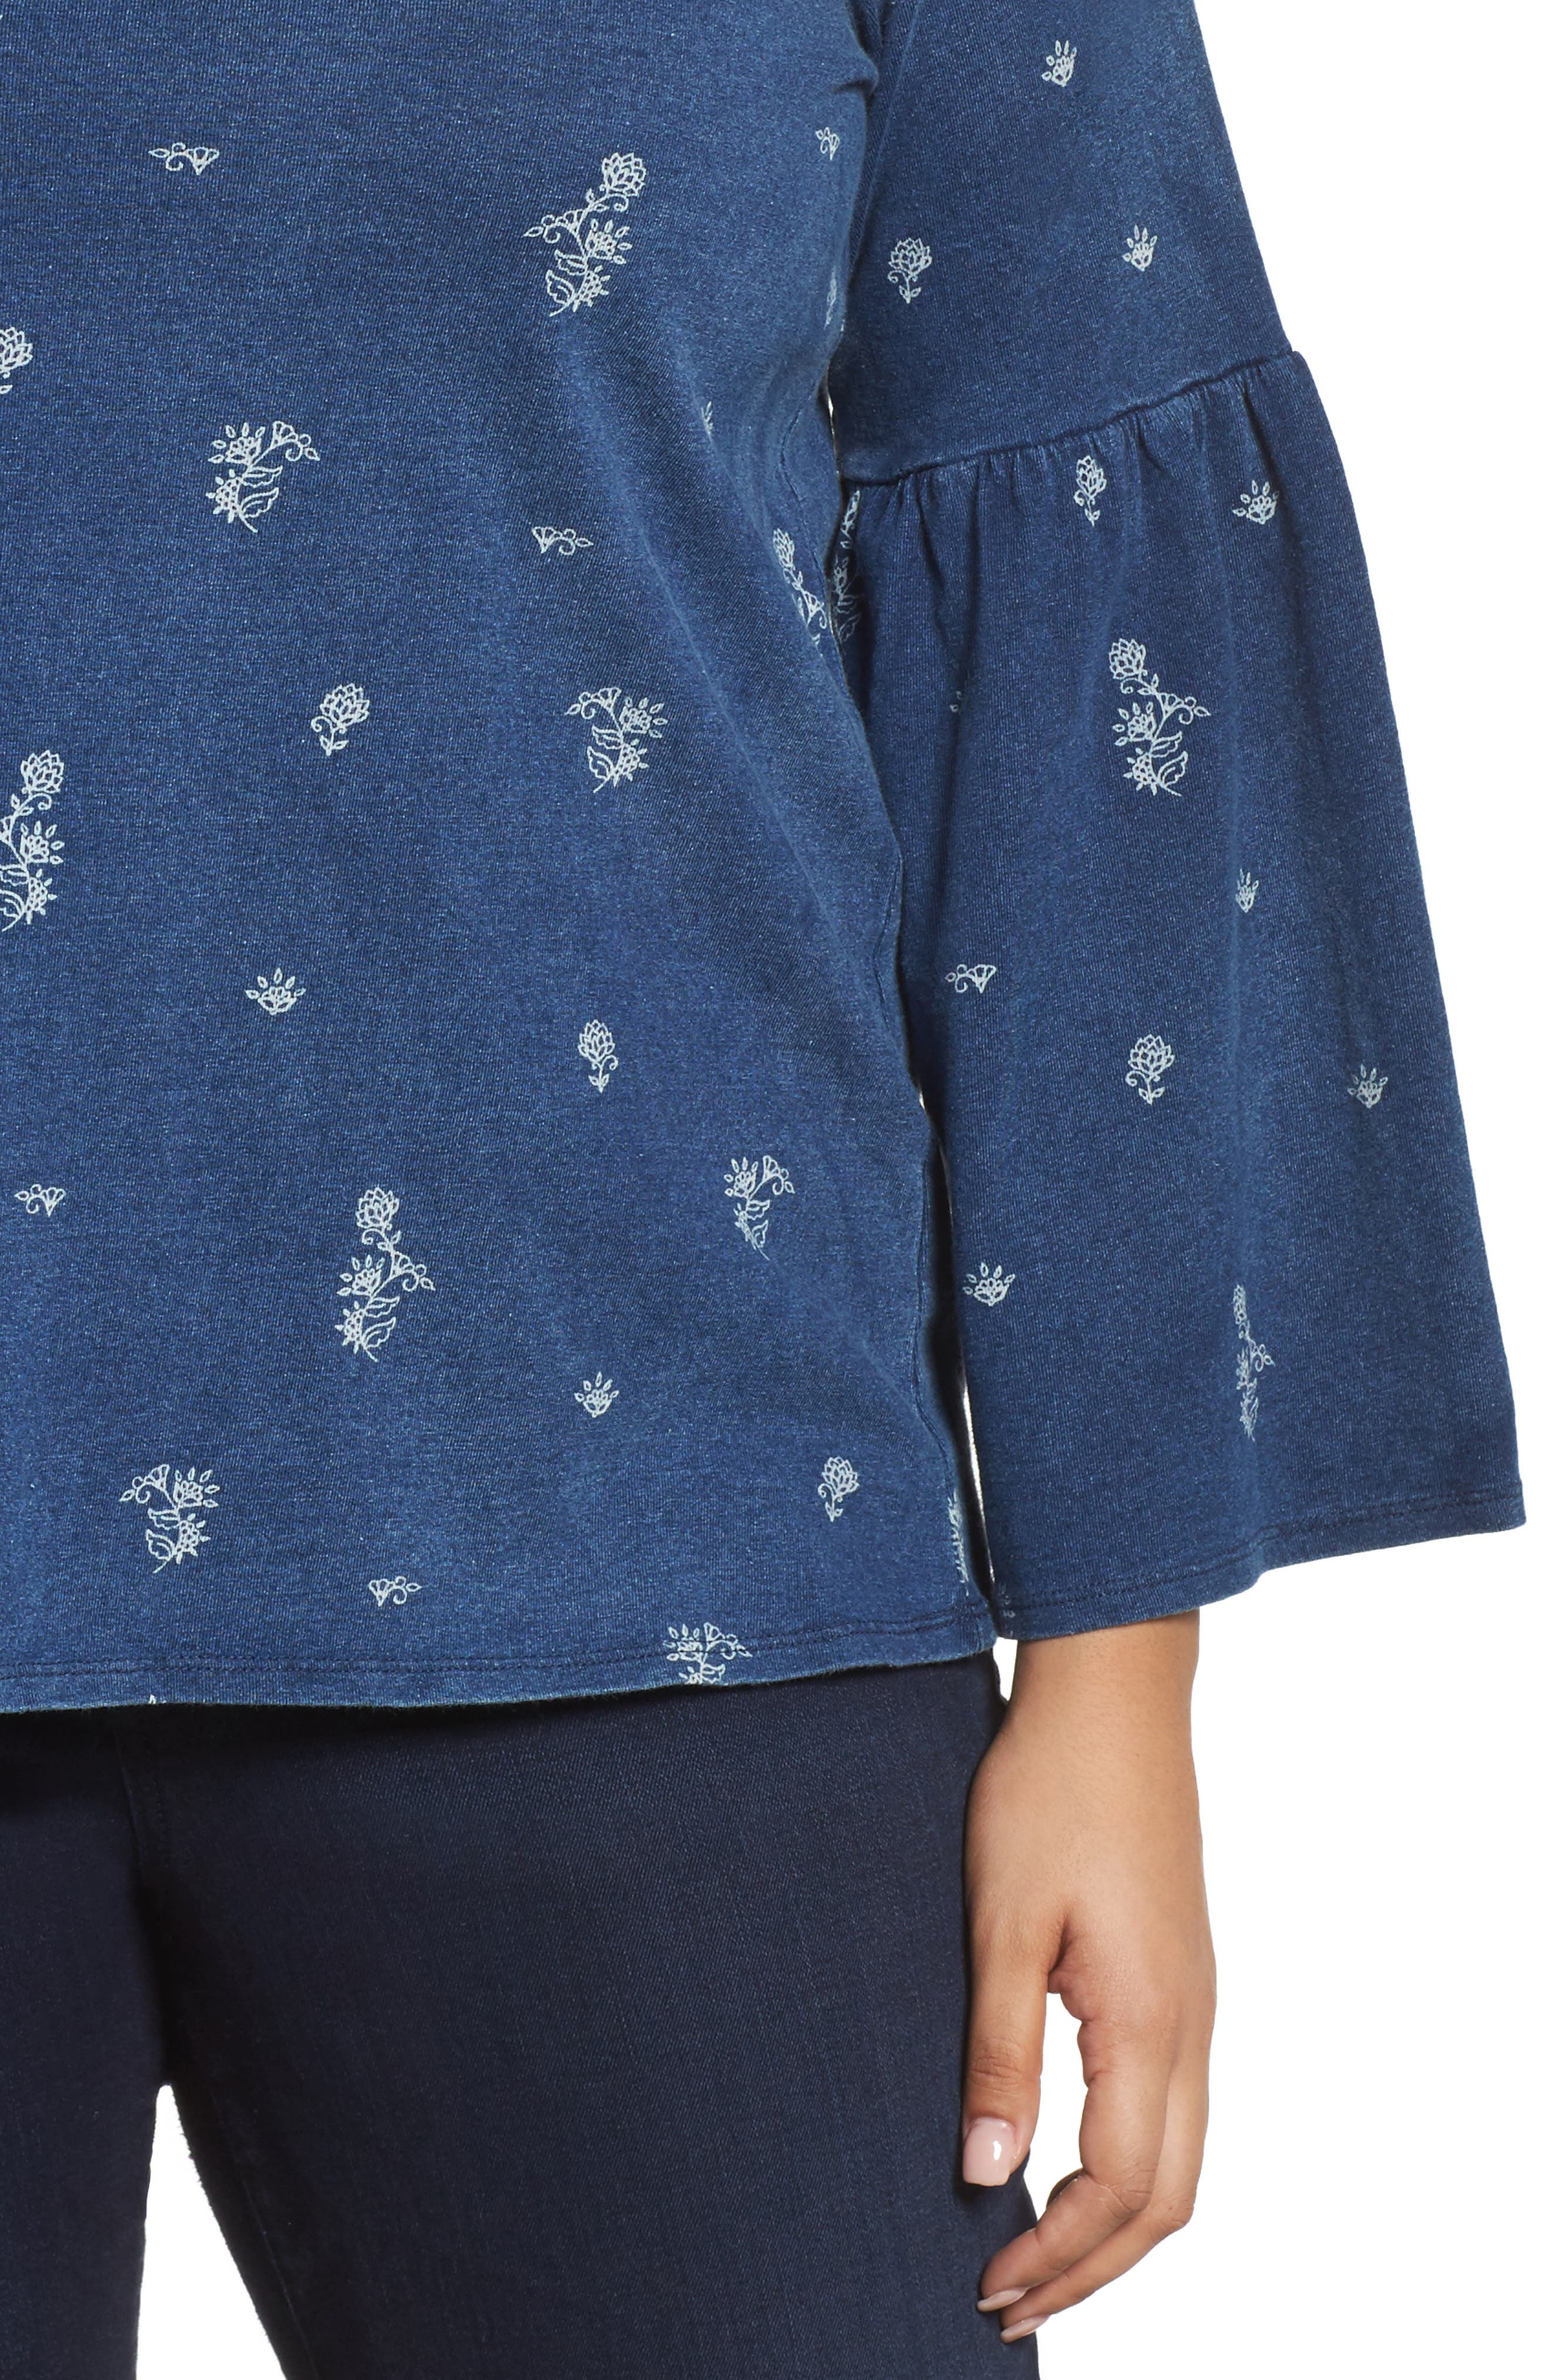 Ditzy Floral Print Bell Sleeve Top,                             Alternate thumbnail 4, color,                             TRUE INDIGO